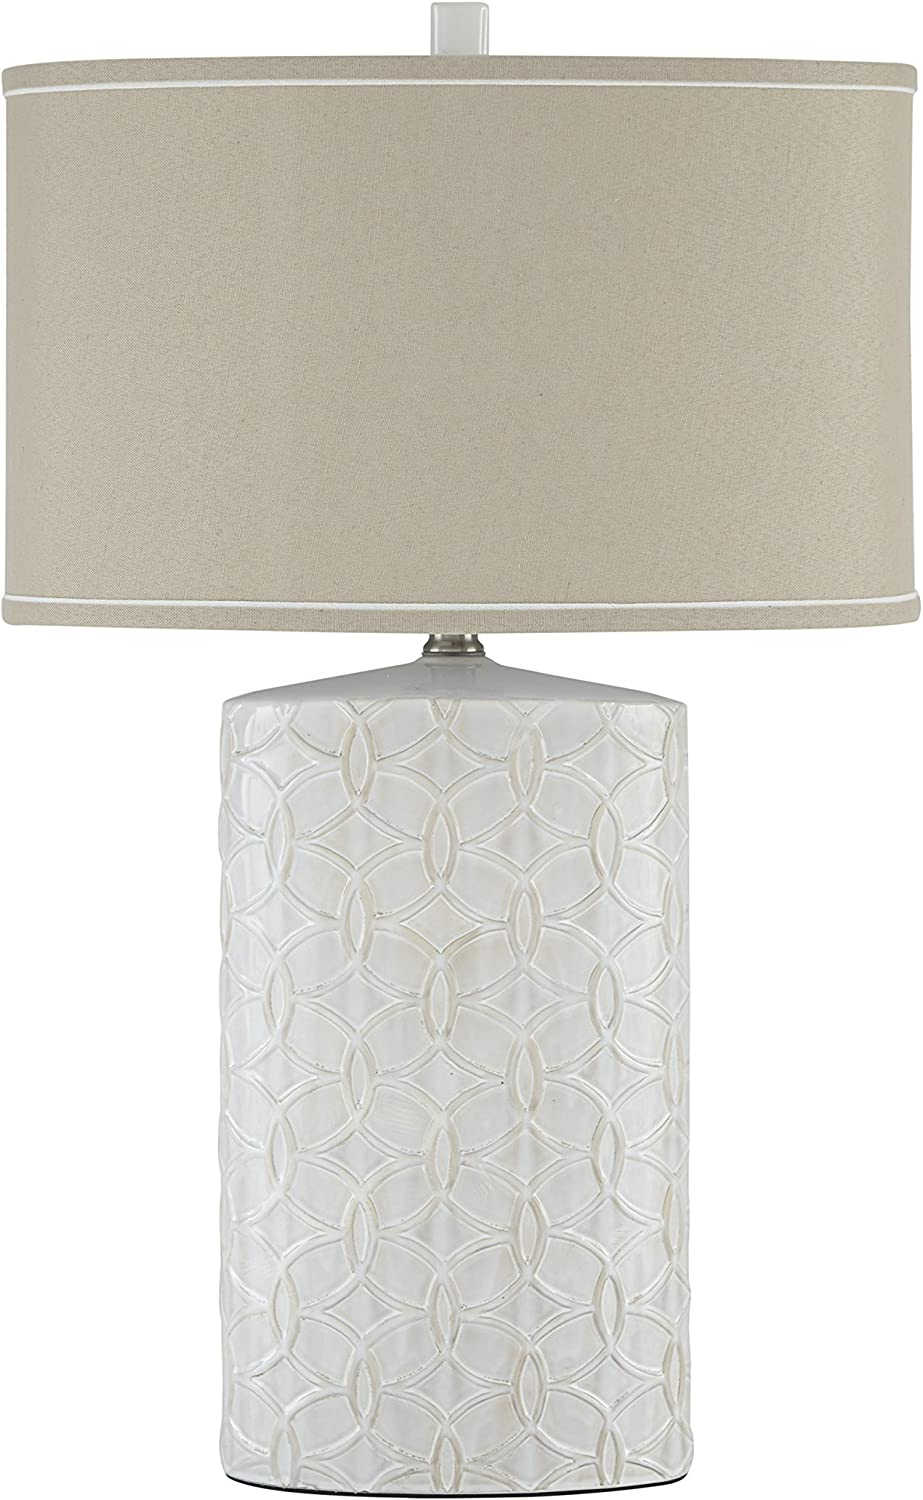 Signature Design by Ashley - Shelvia Textured Ceramic Table Lamp - Oval Drum Shade - Antique White